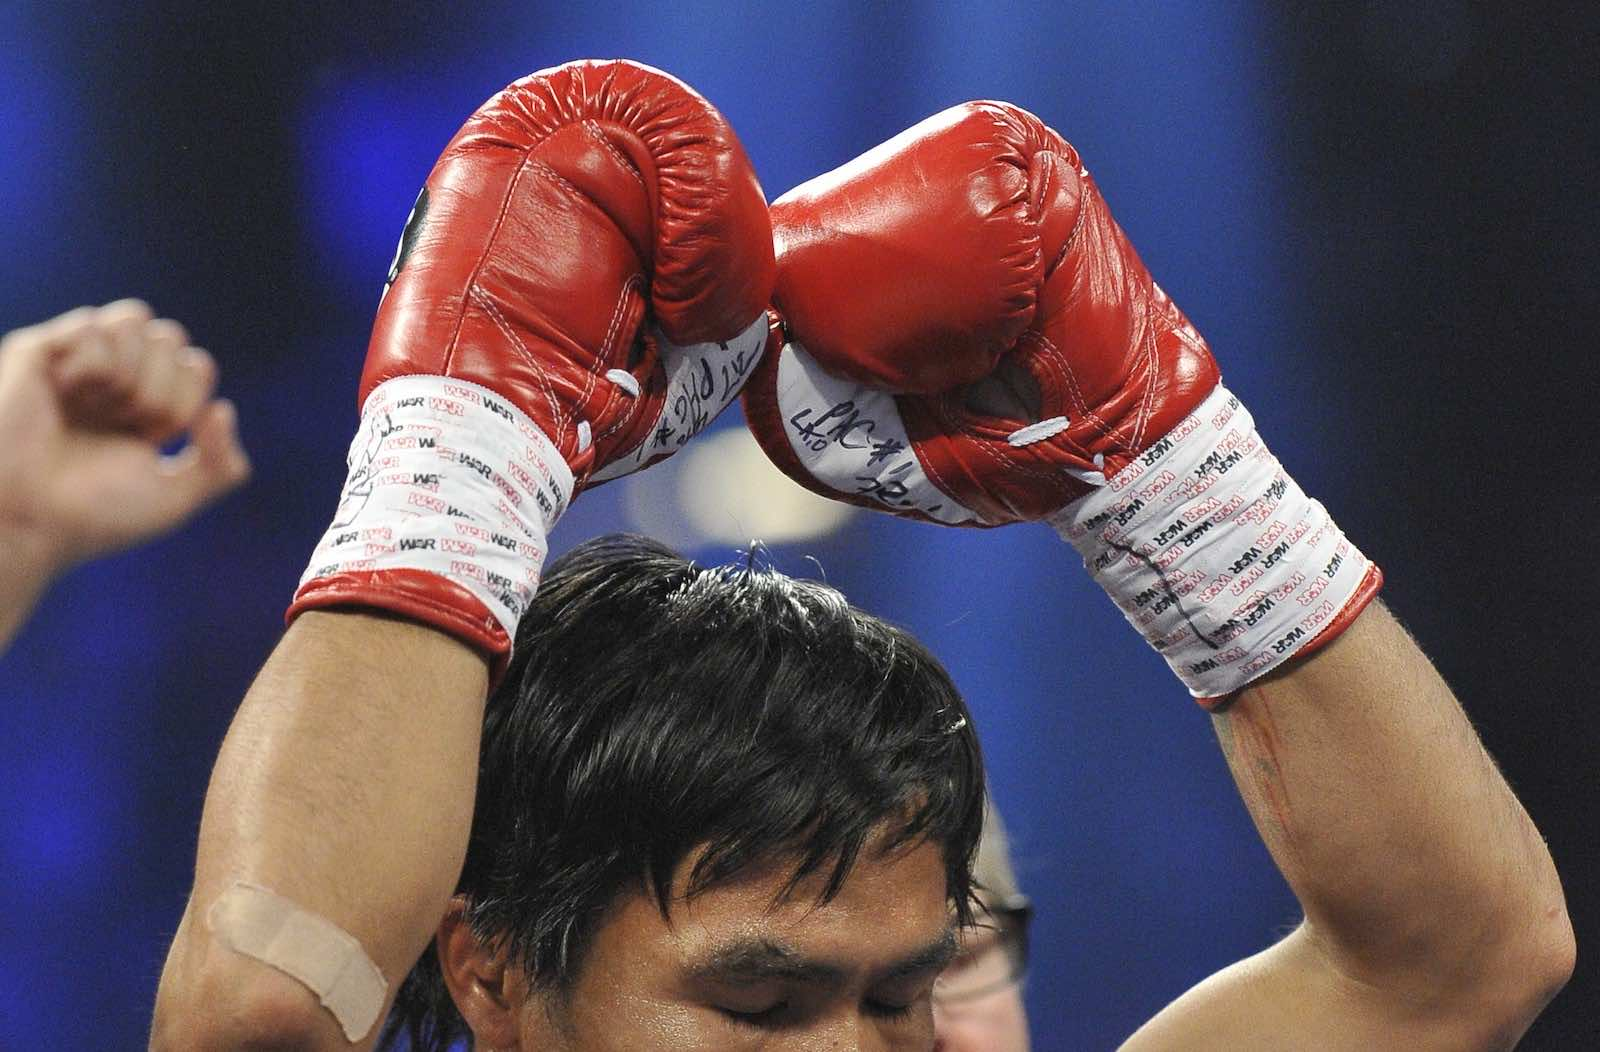 Manny Pacquiao, earlier in his boxing career, in Las Vegas, United States (Joe Klamar/AFP via GettyImages)